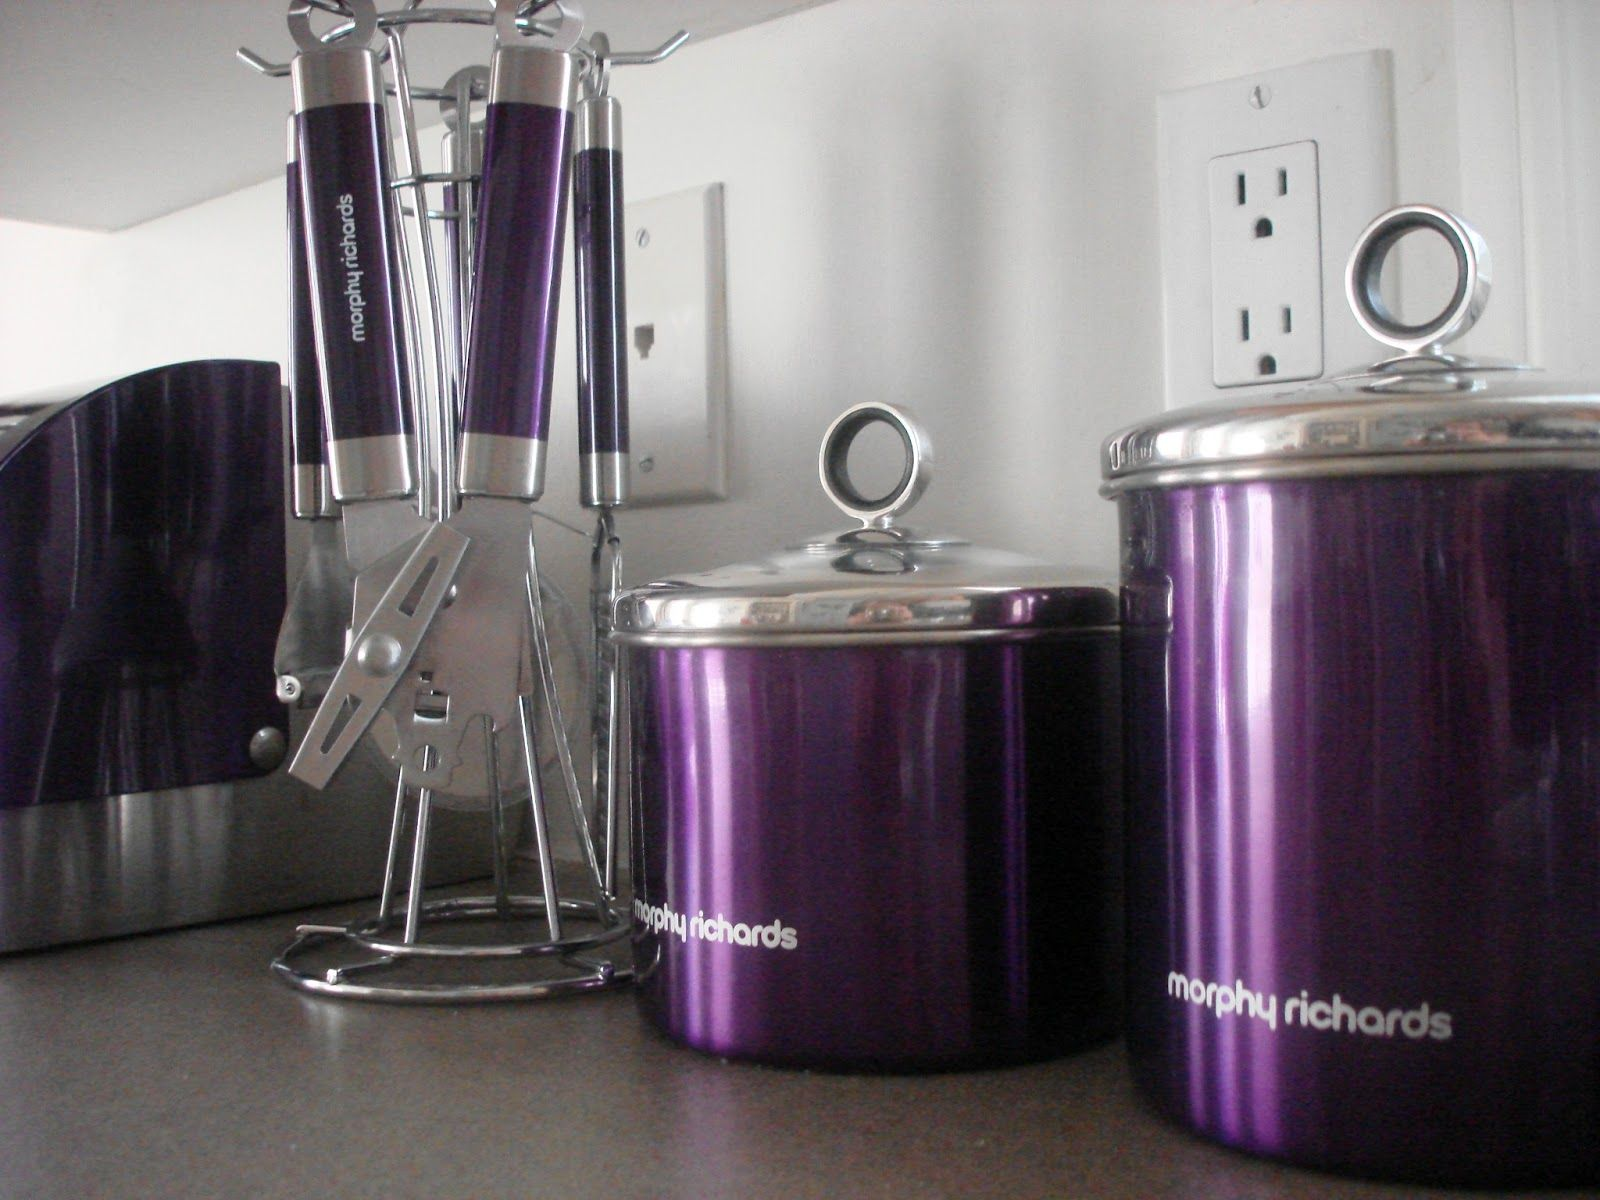 Uncategorized Purple Kitchen Appliances purple kitchen applianceskitchen 1000 images about kitchens on pinterest kitchen